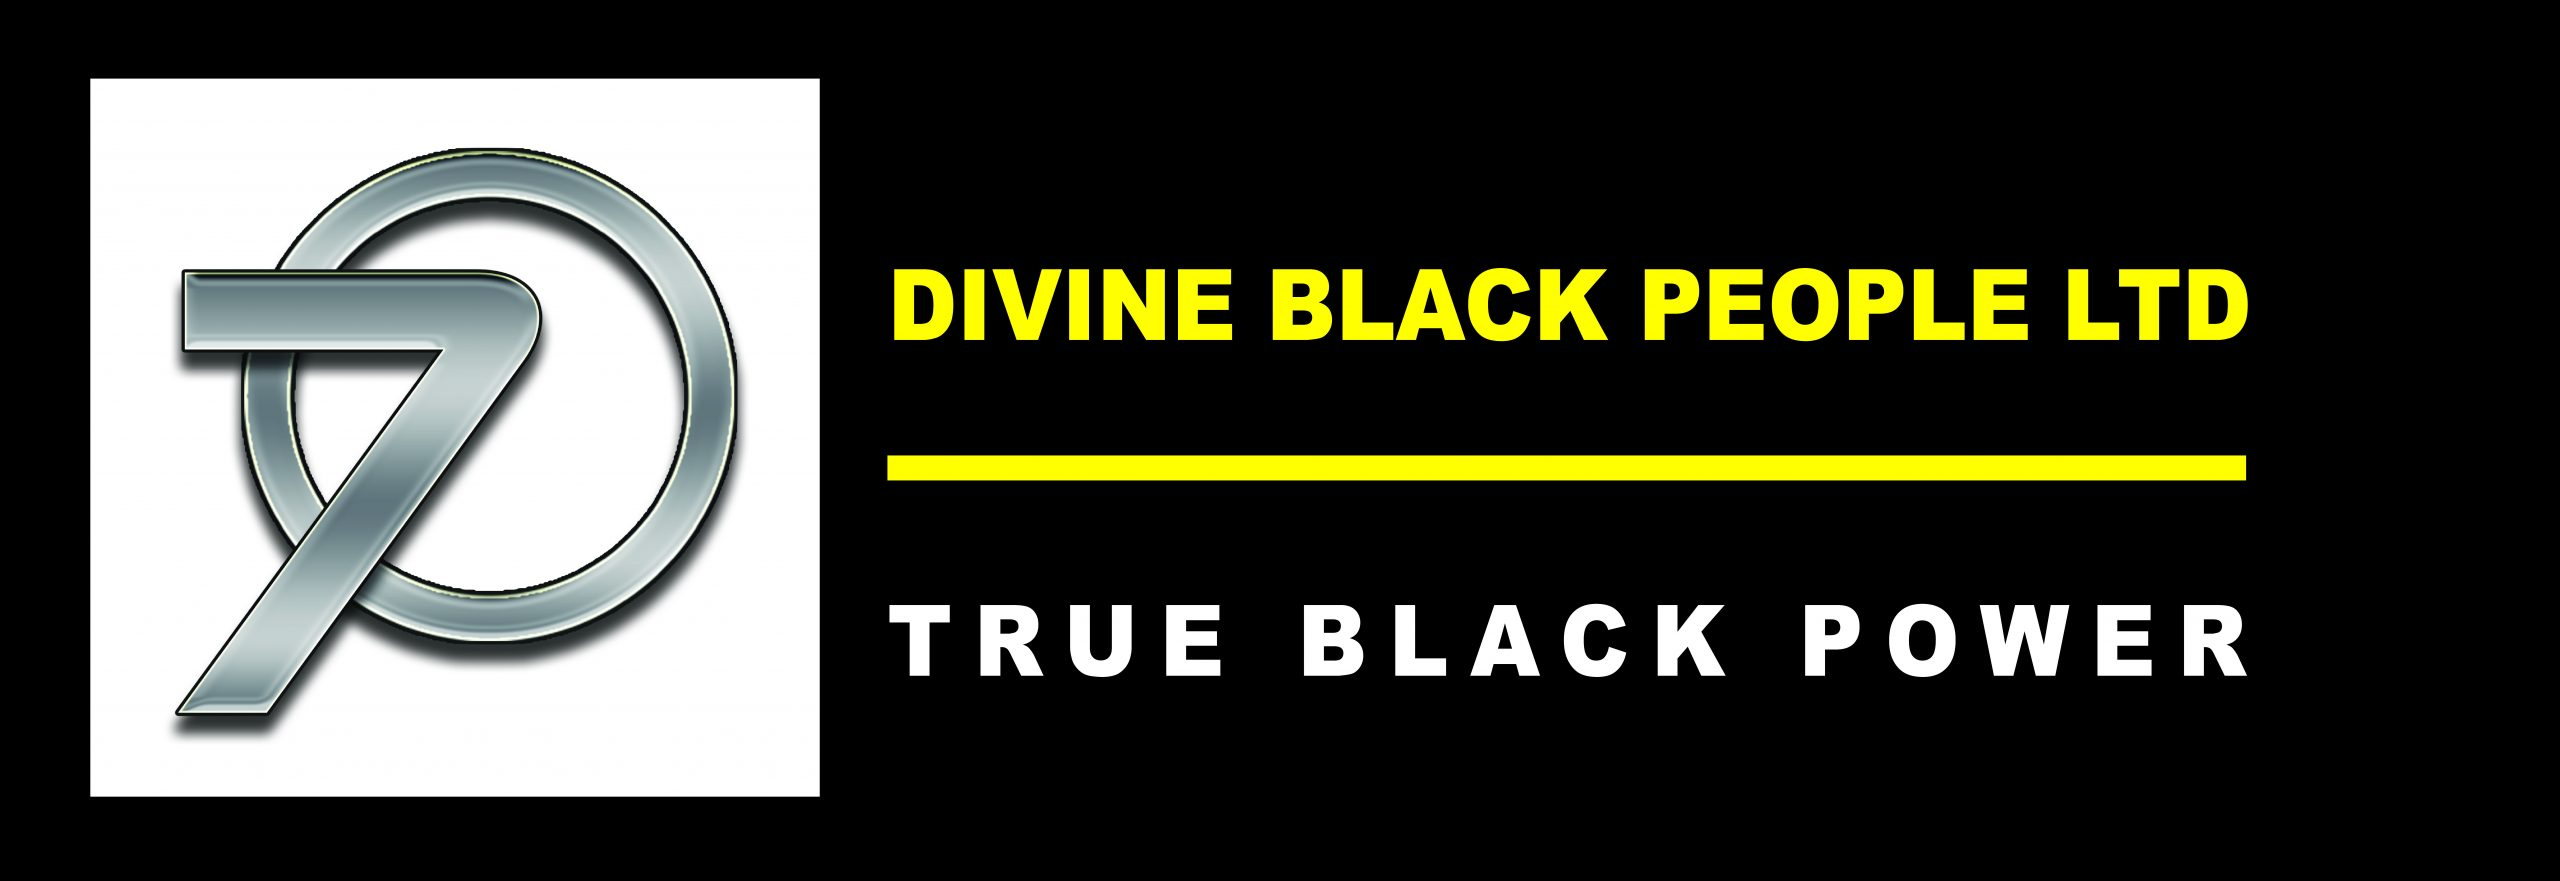 Divine Black People